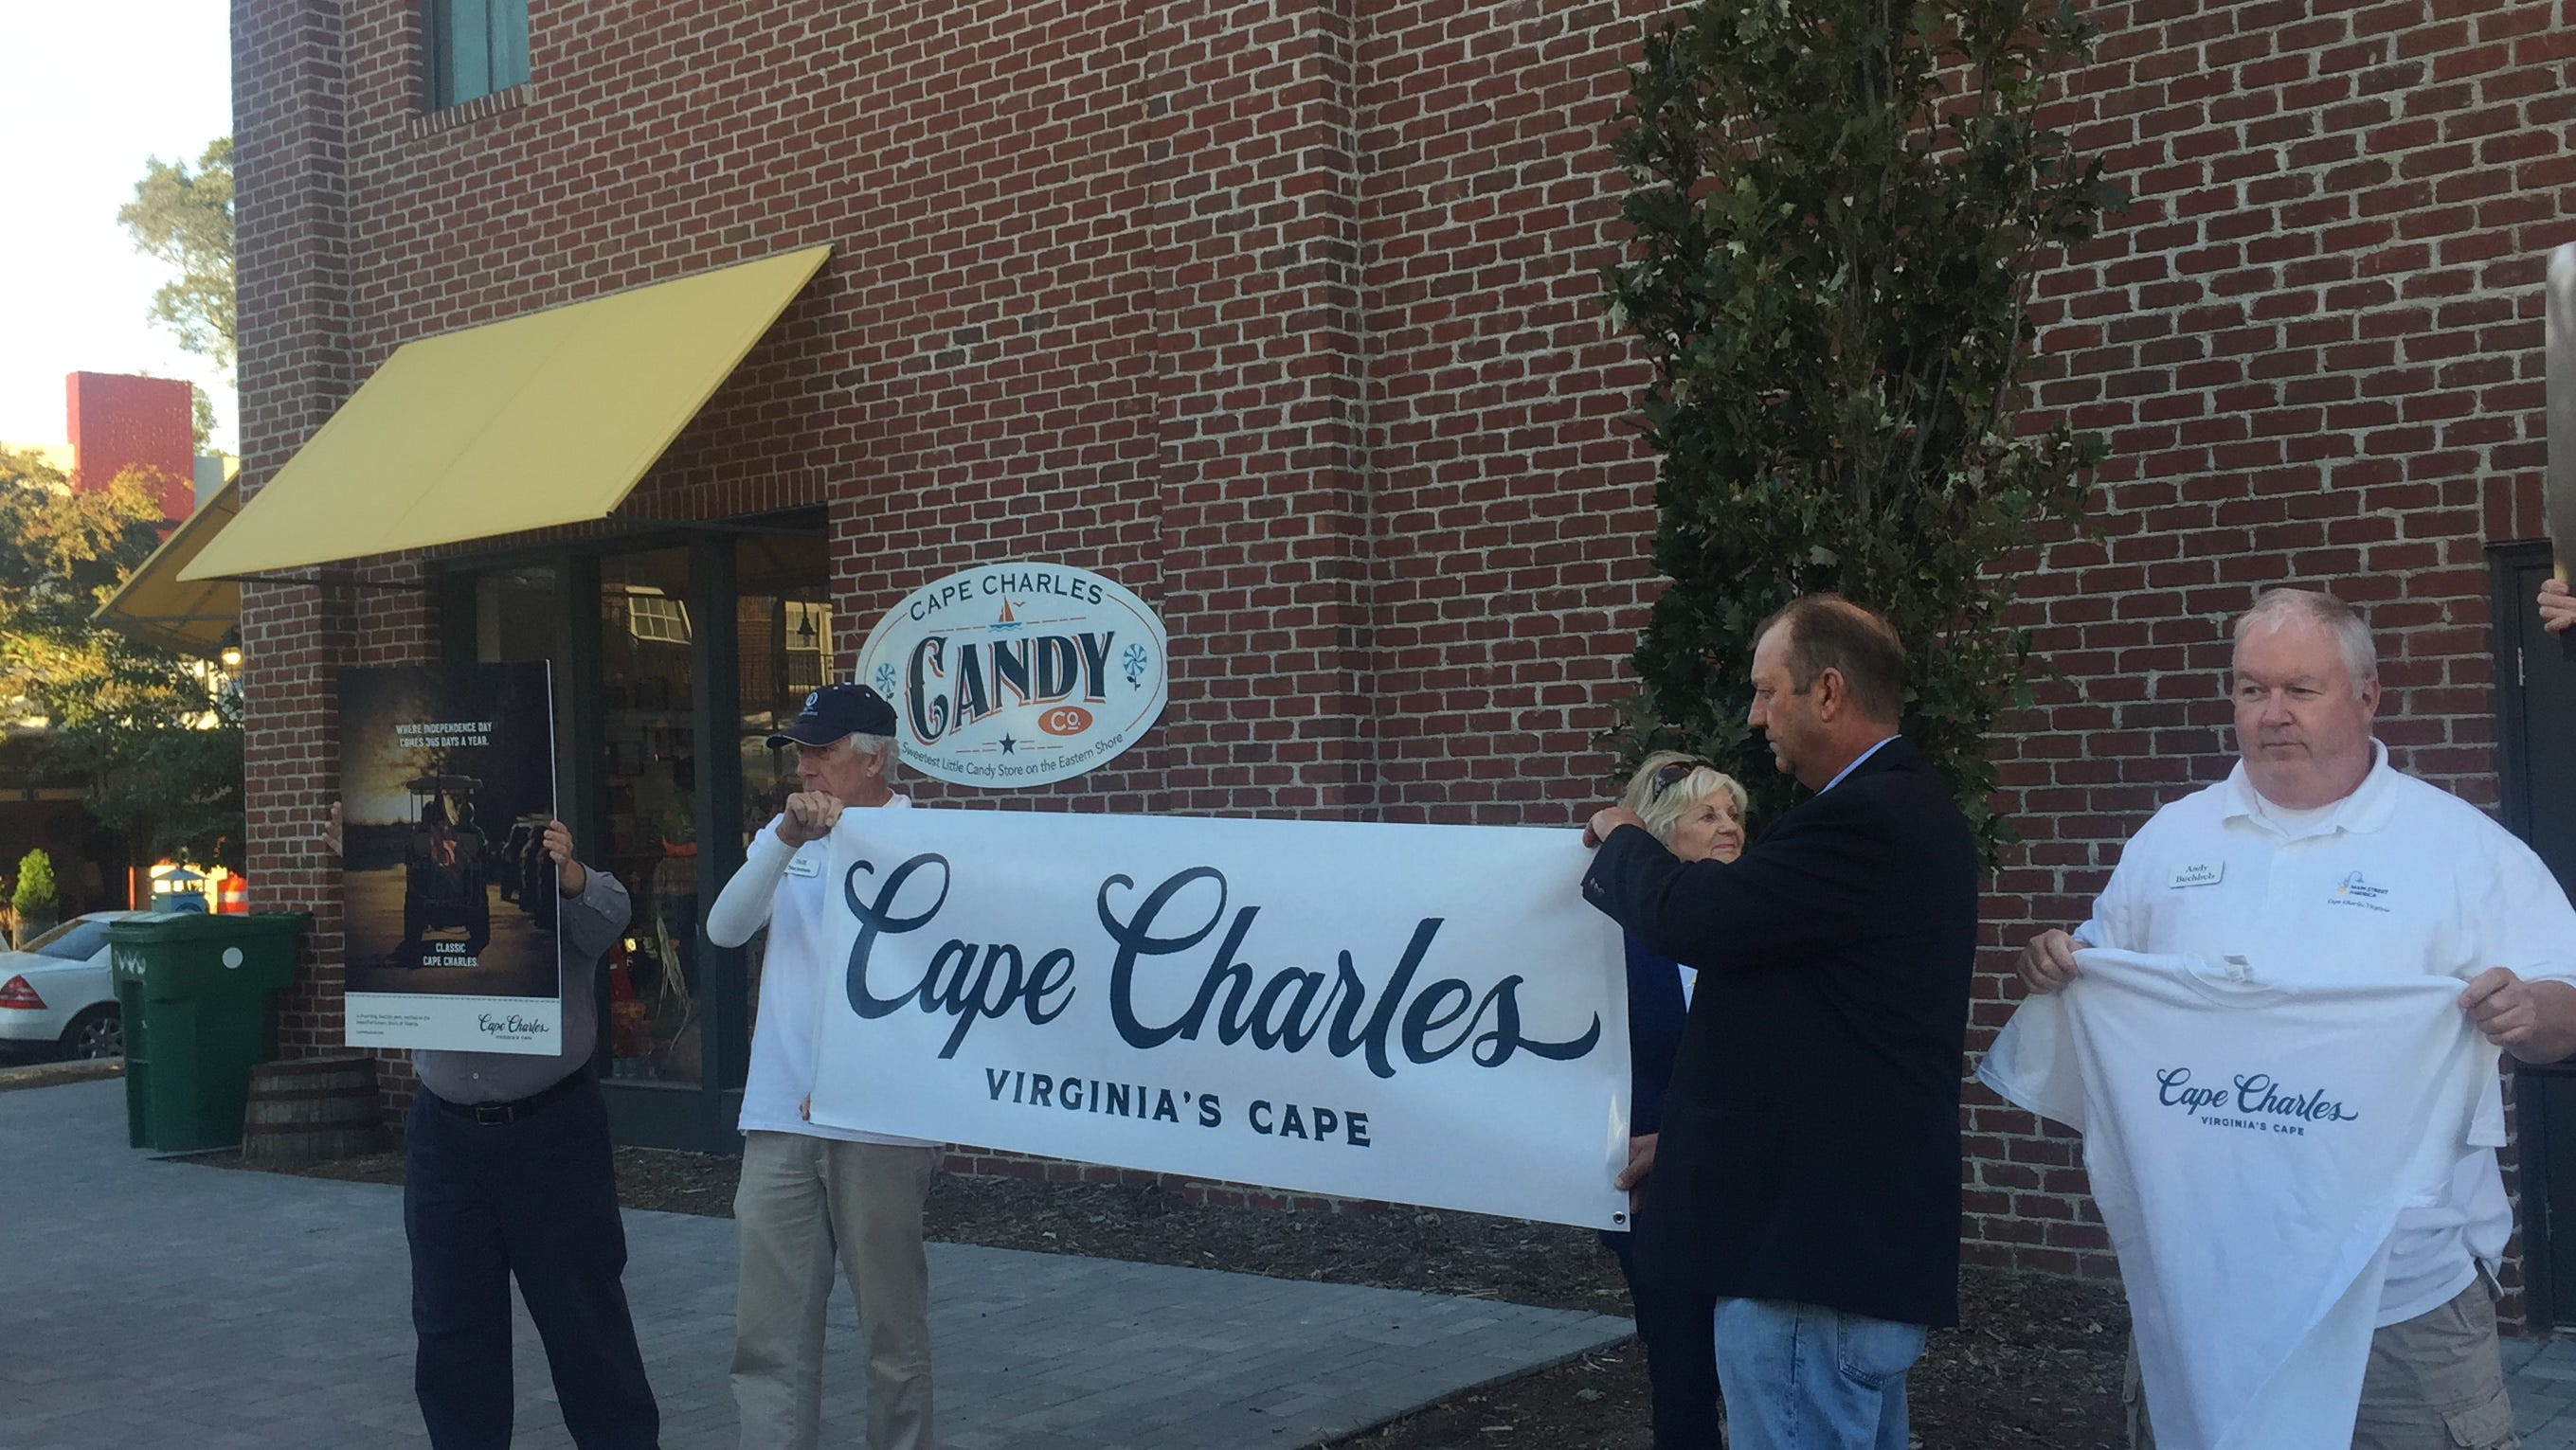 A new brand and logo for the town of Cape Charles is unveiled during a ceremony on Friday, Oct. 19, 2018 in Cape Charles, Virginia.